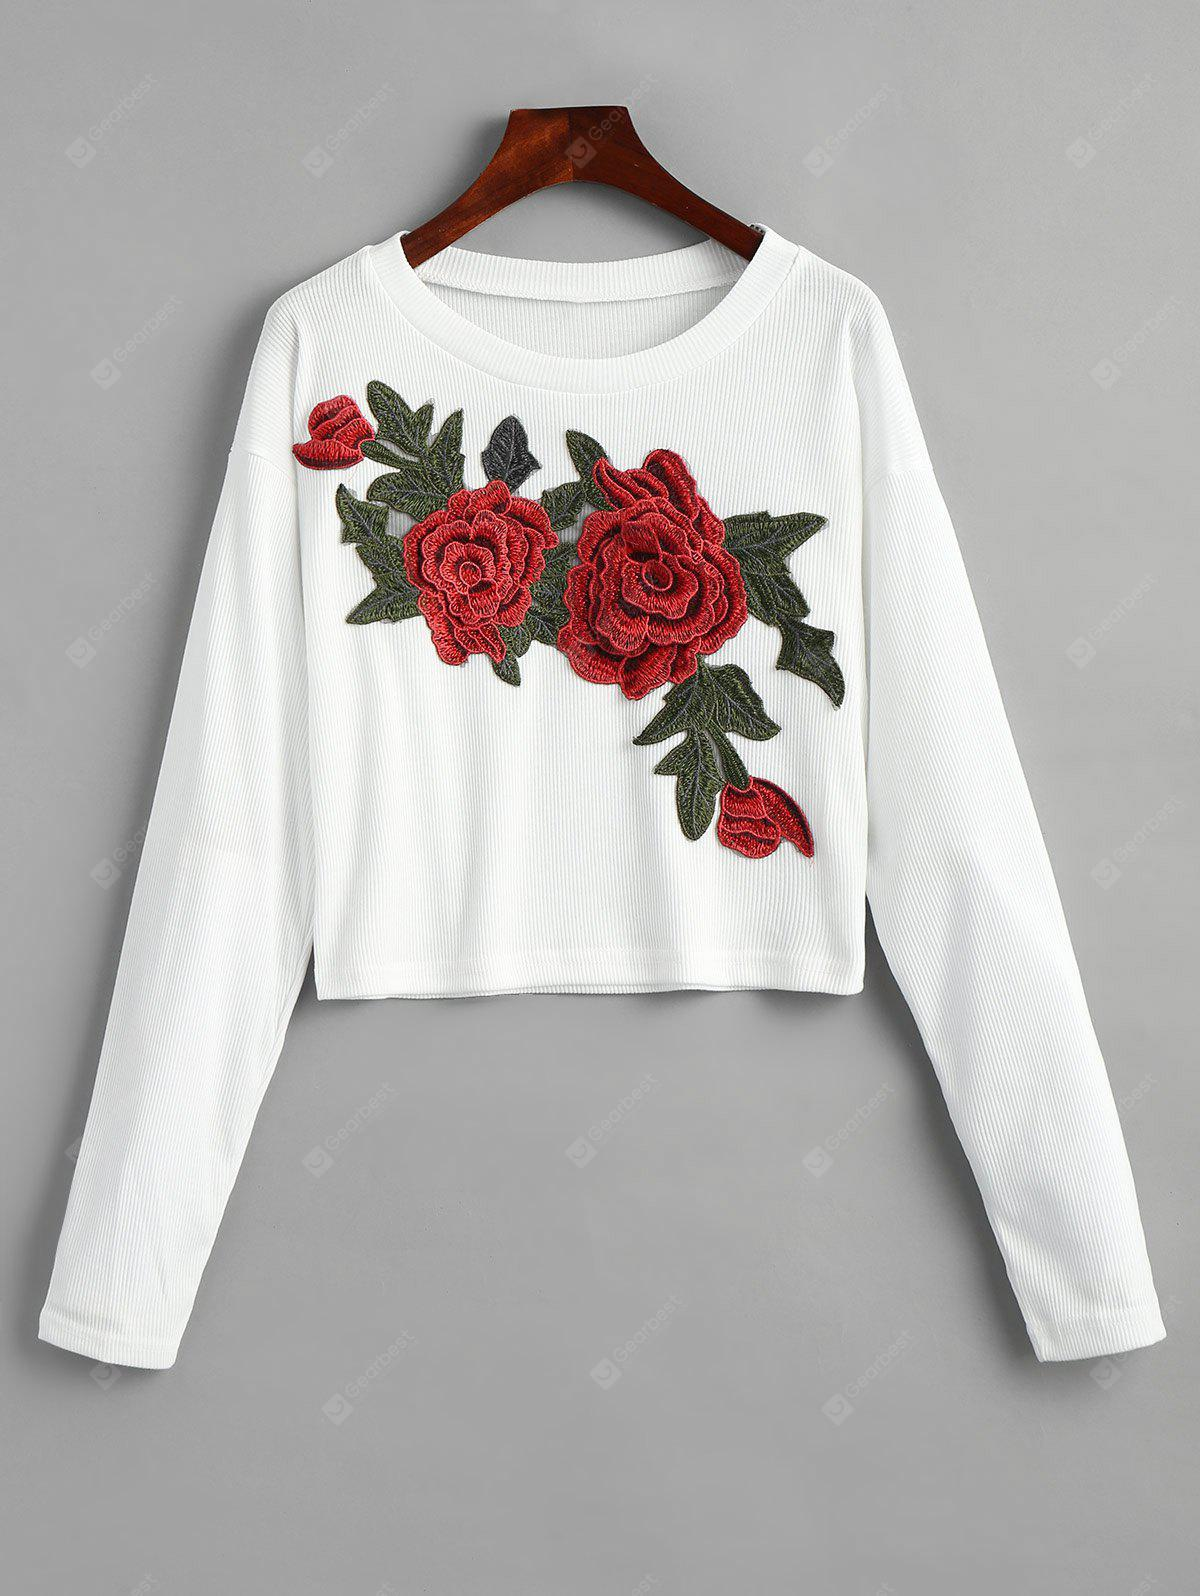 Ribbed Floral Applique Cropped T-shirt